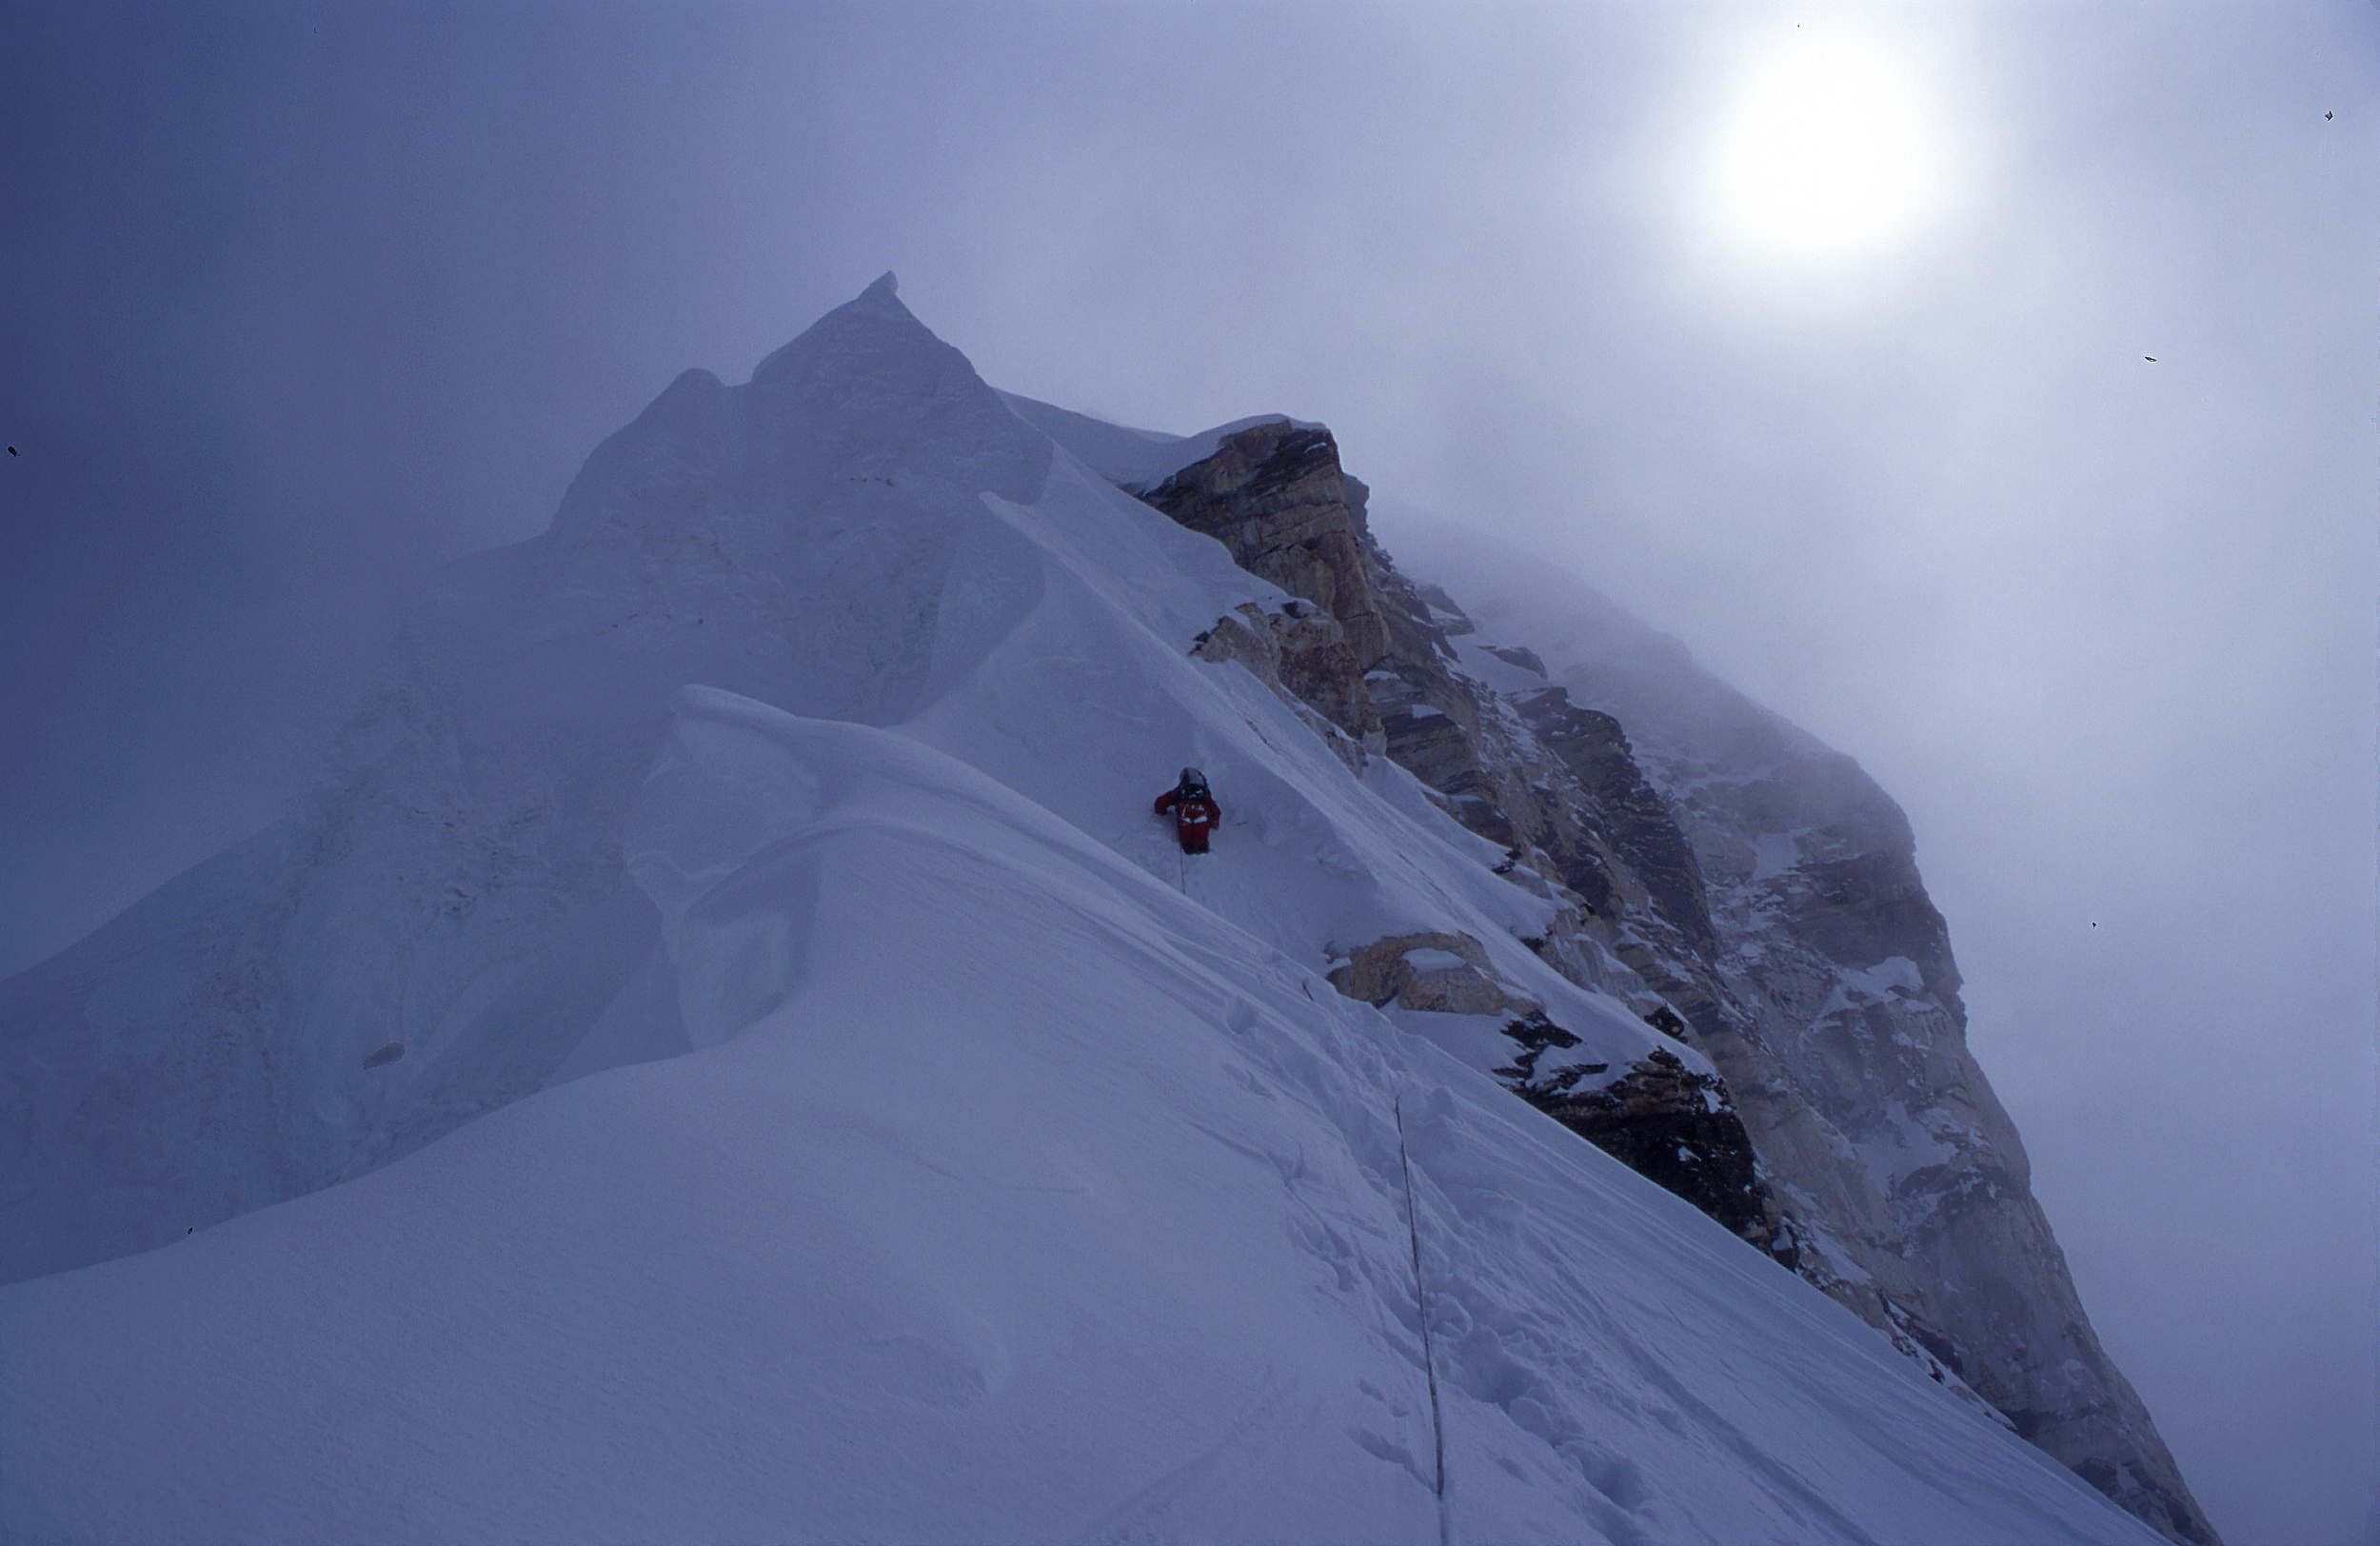 Bad conditions at ca. 7500m. We spent the night just left of the rock buttress.